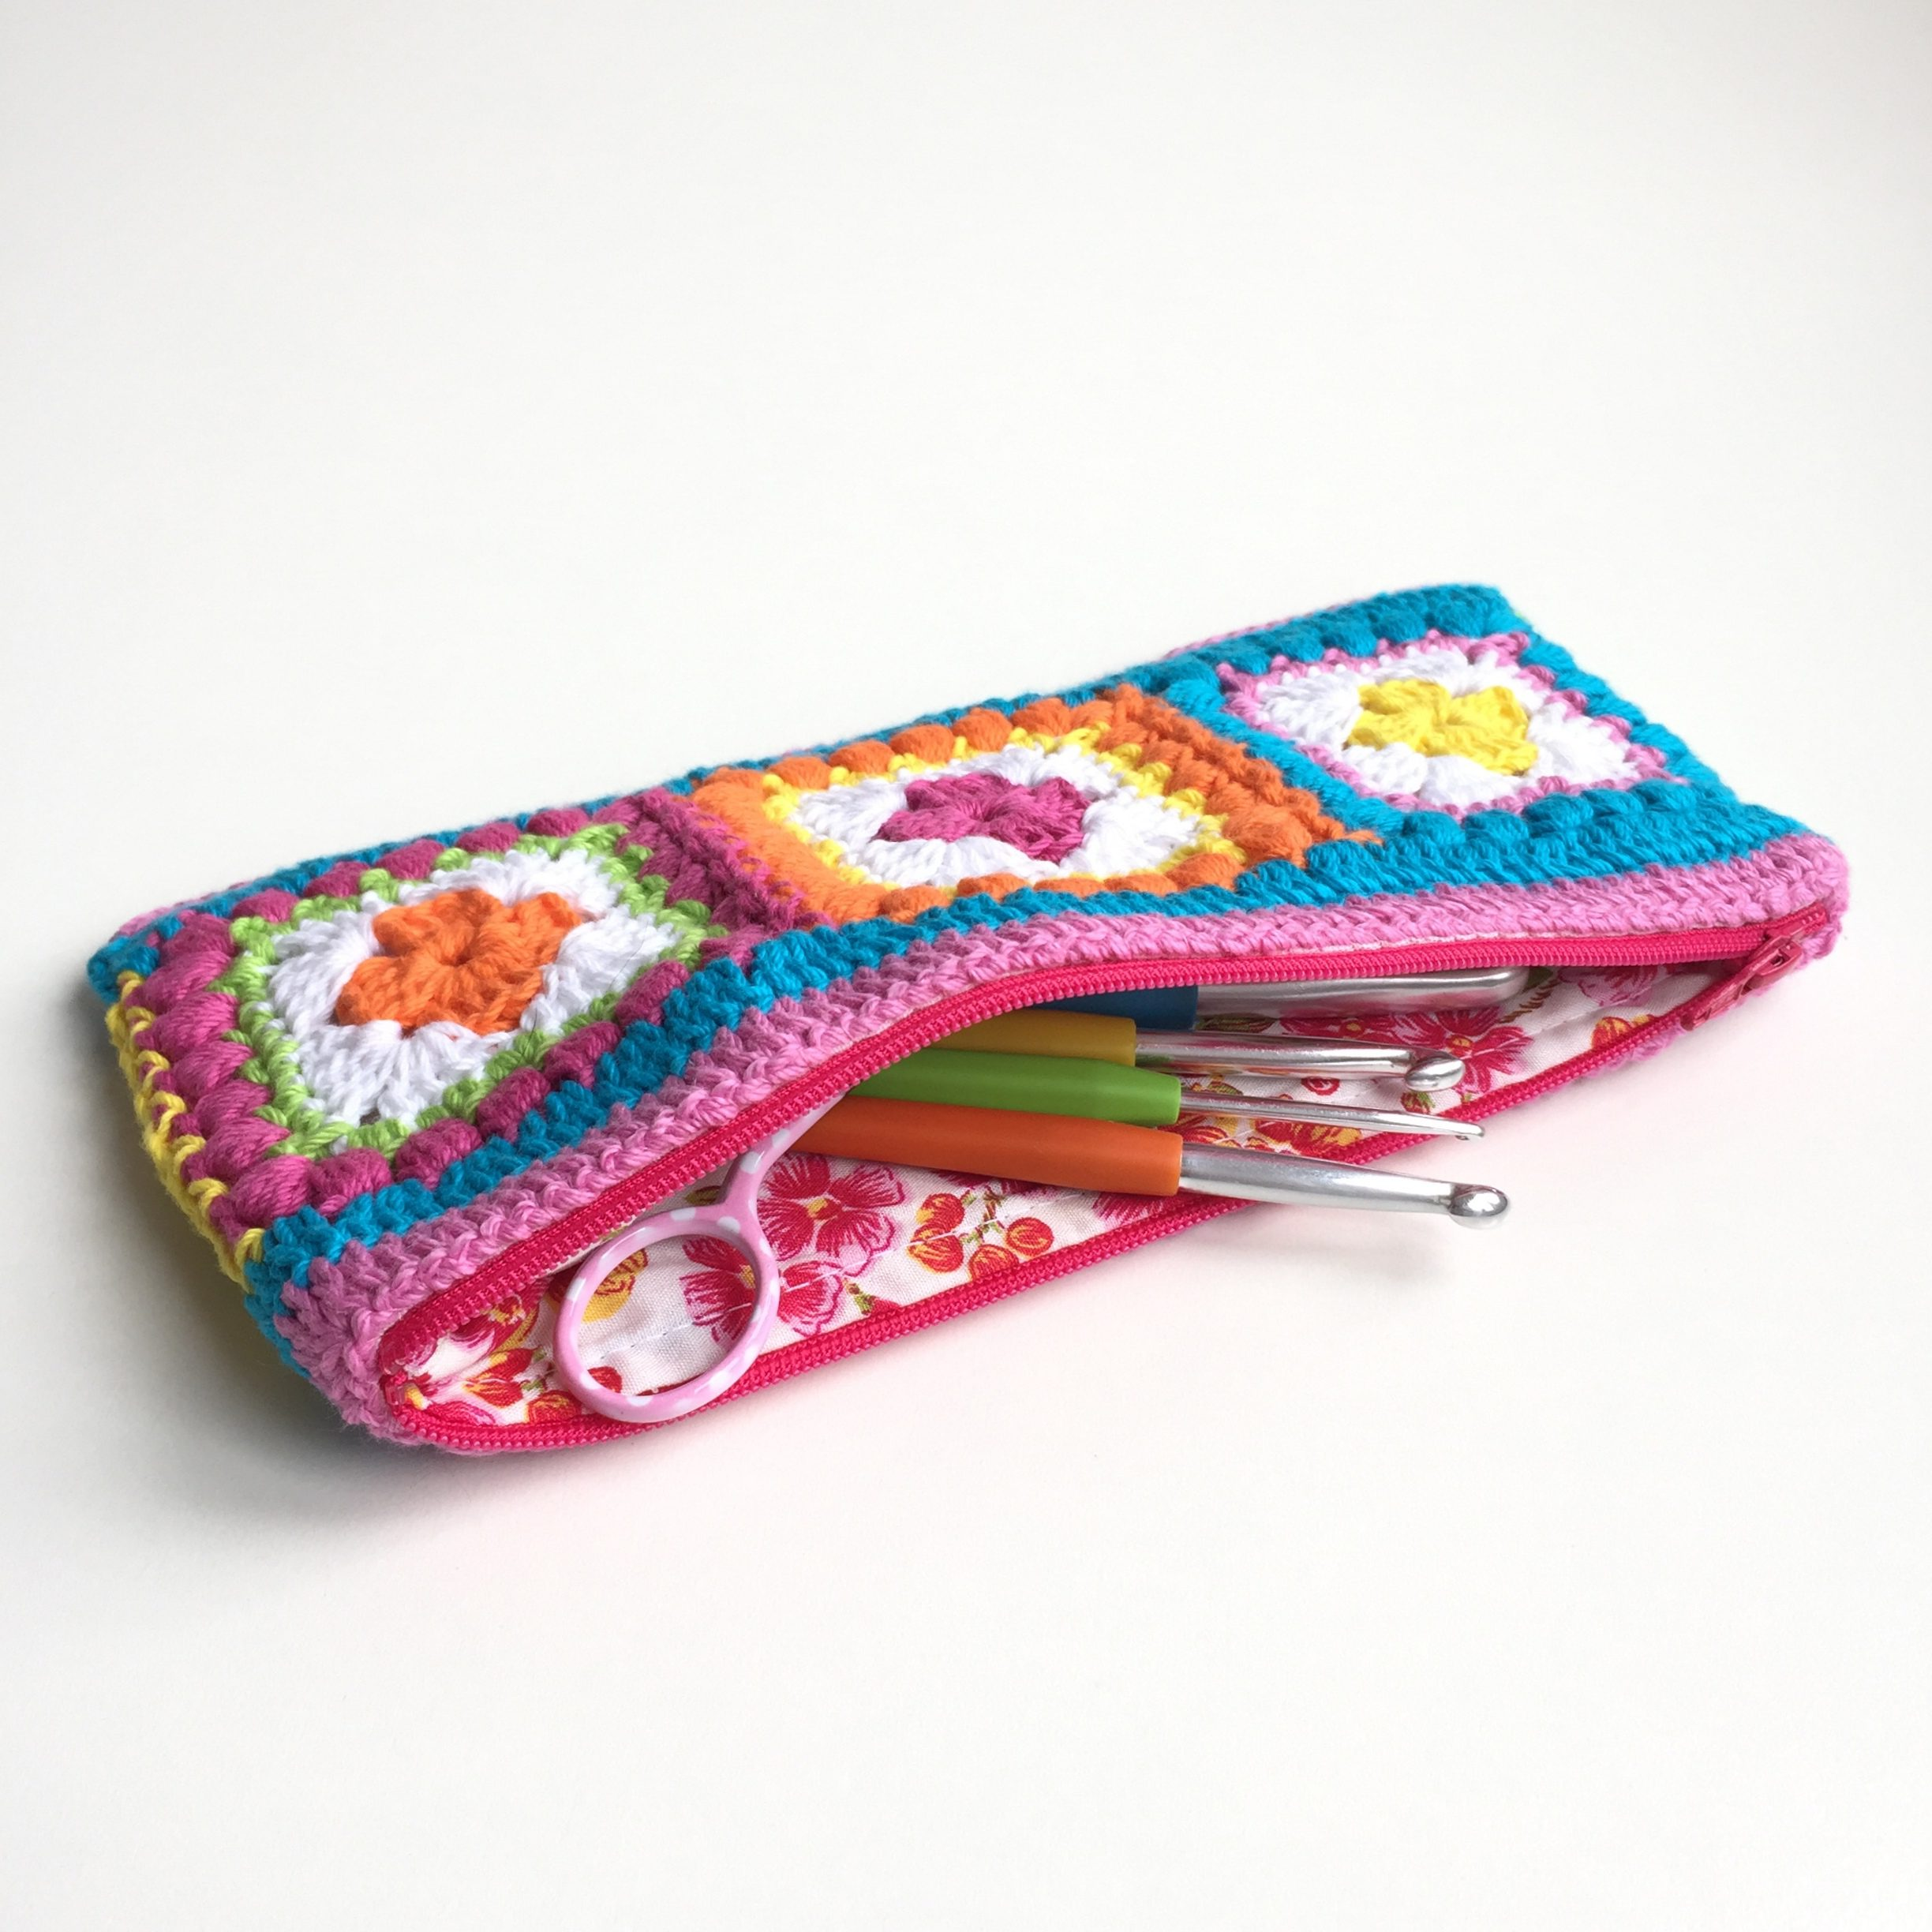 Bobble Square Hook Case Zippered Lining And Cushion Pattern